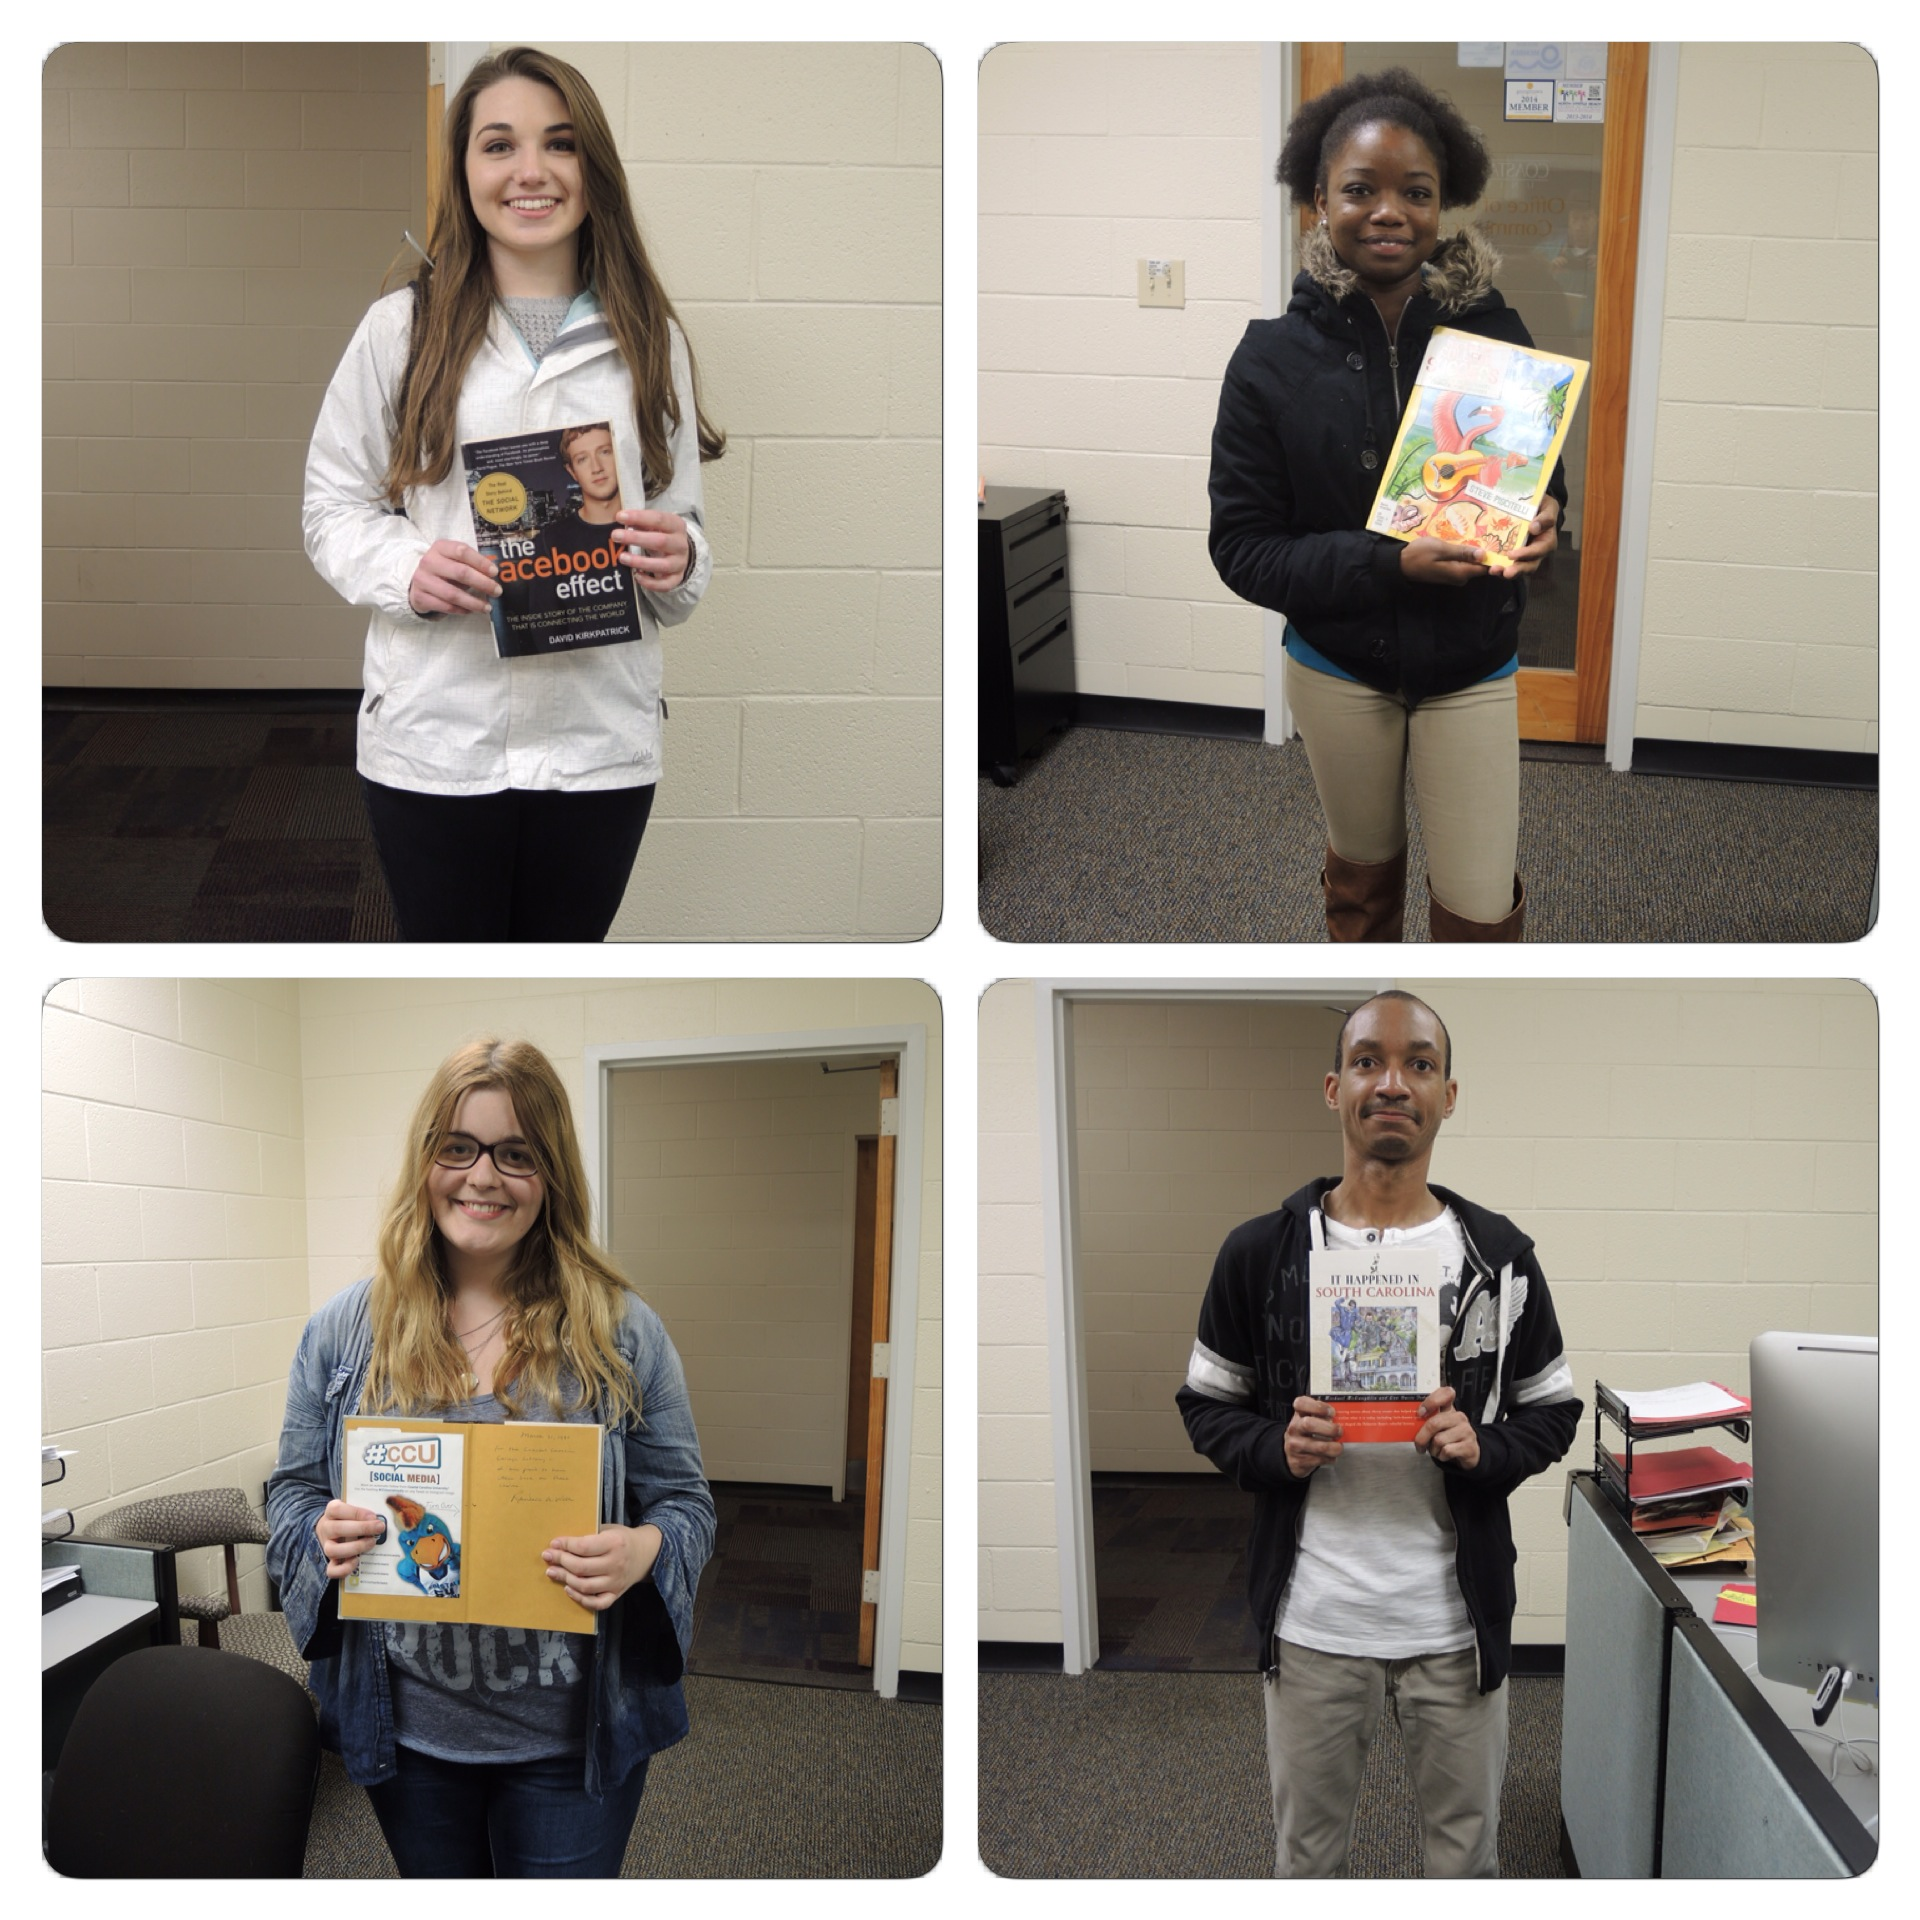 These are the four student winners who checked out the hidden books the past several days.